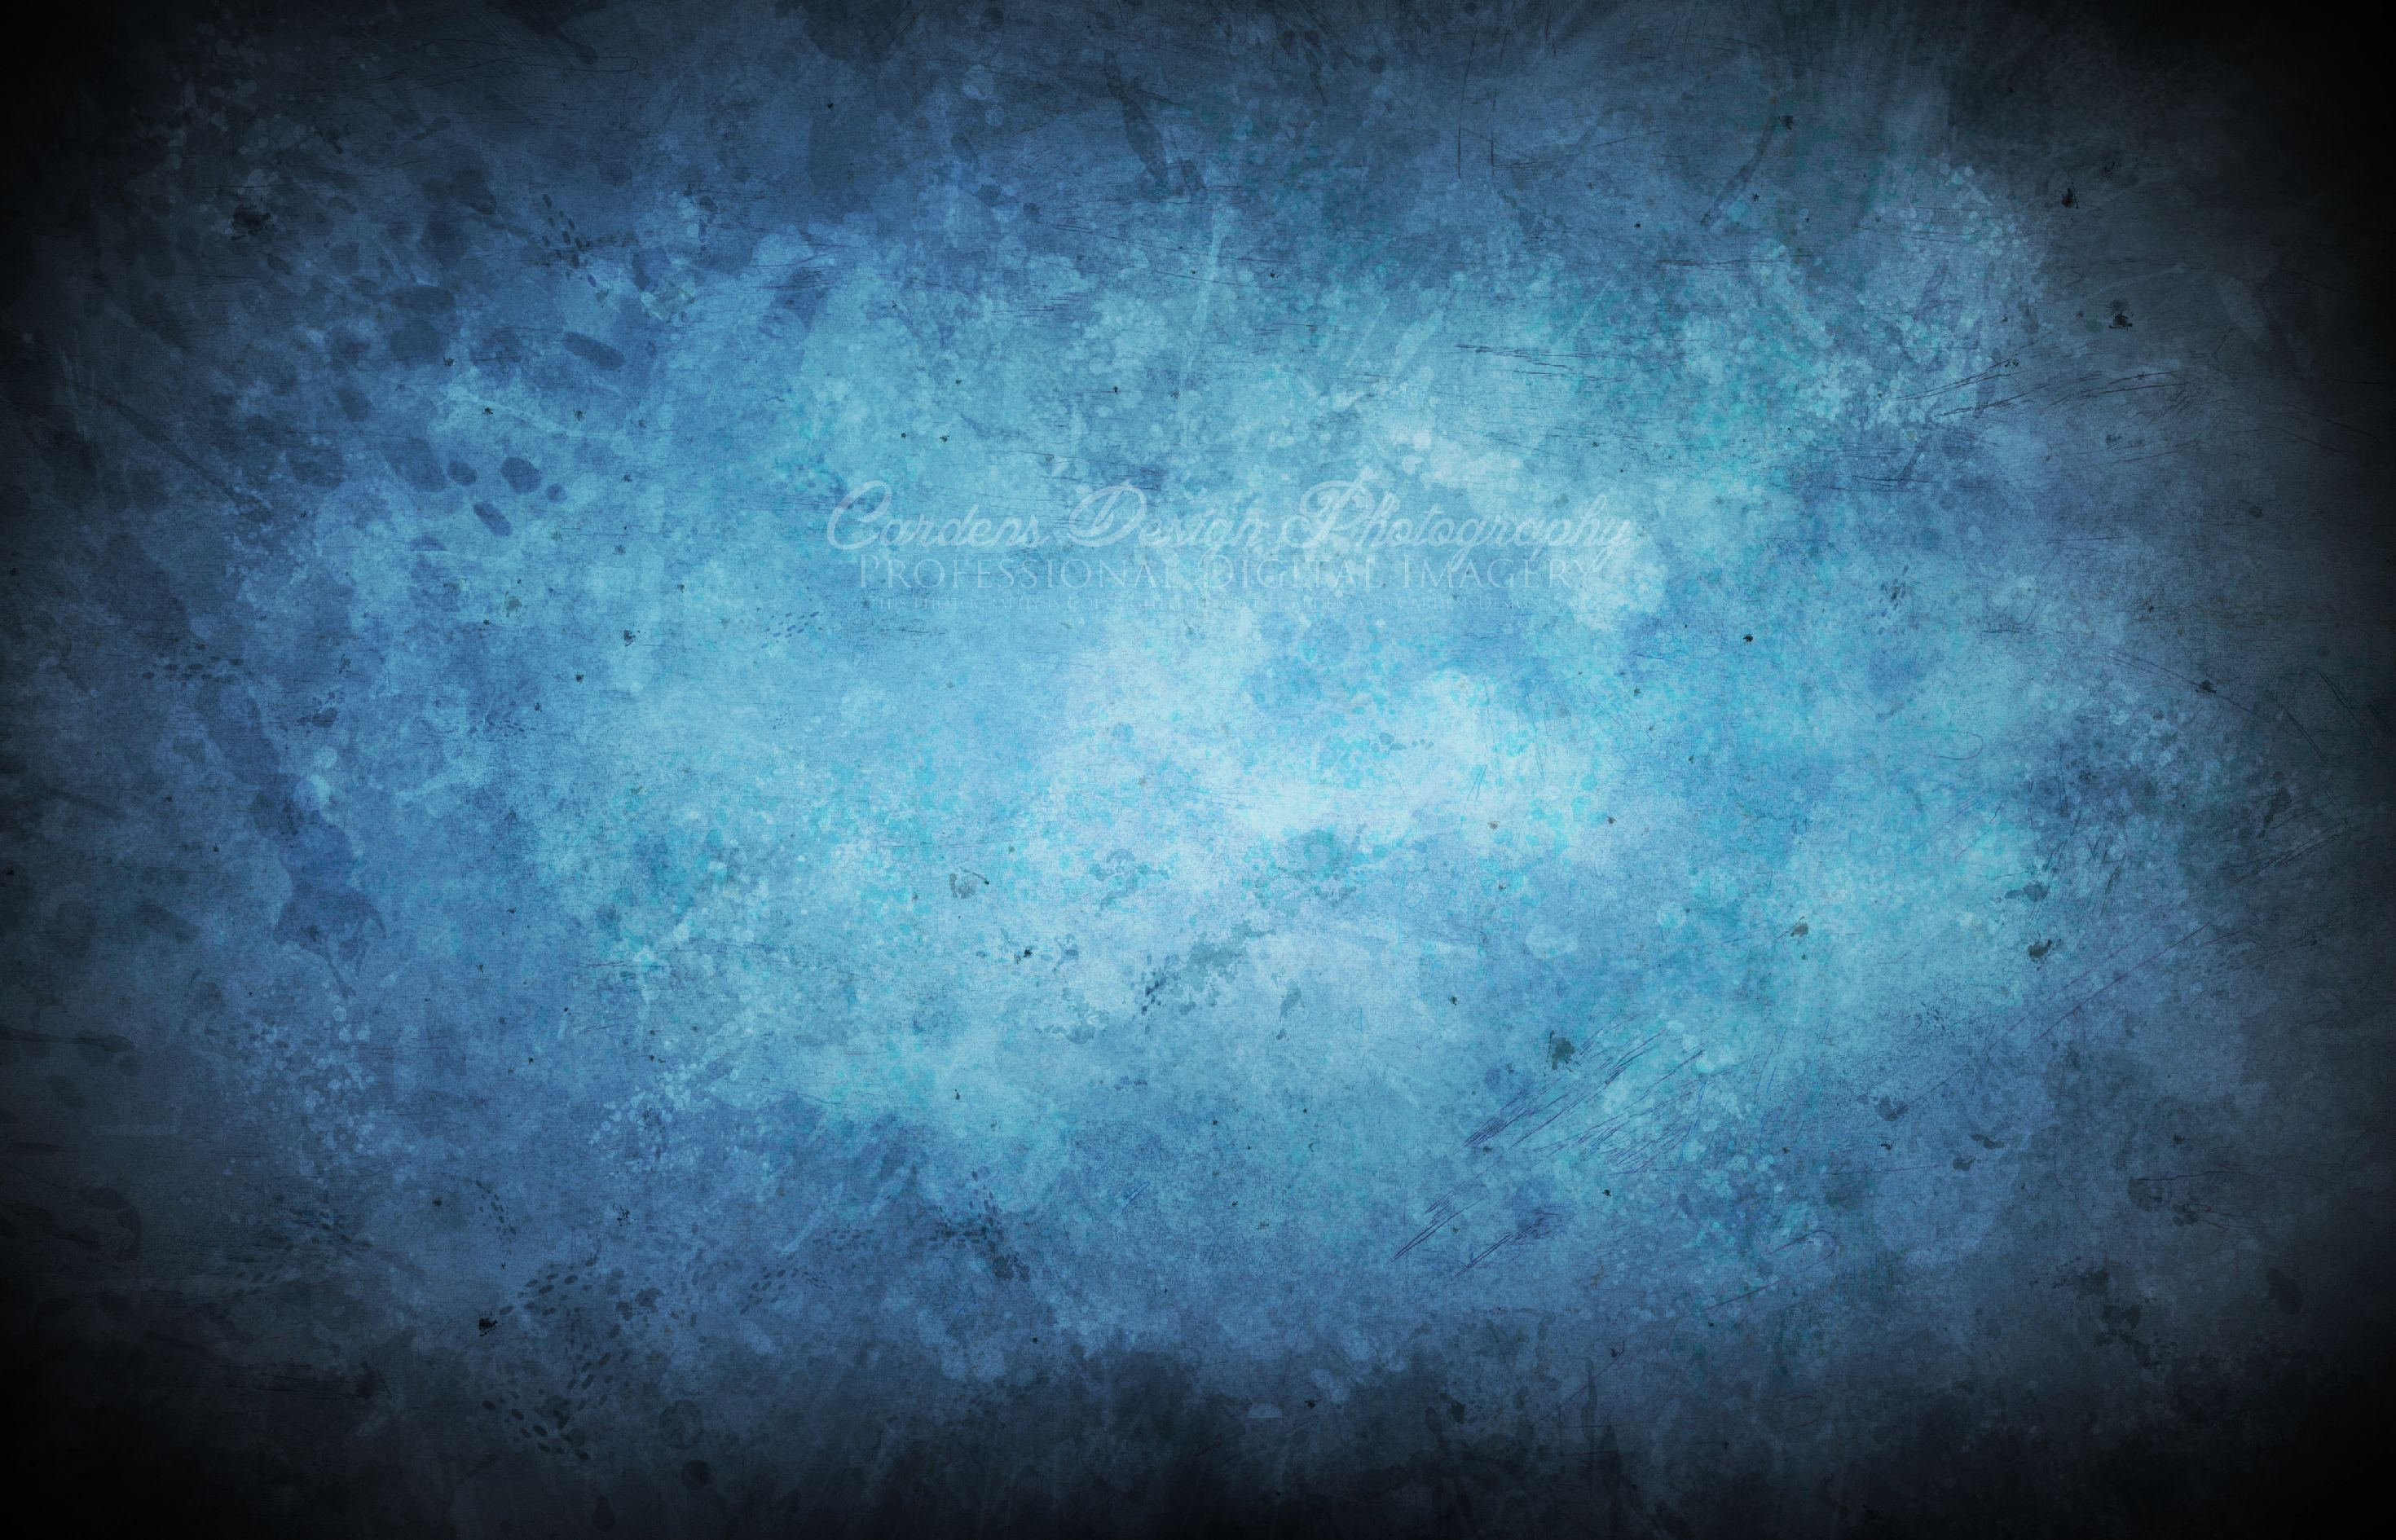 Blue Grunge Background: 30 Blue Grunge Background HD Wallpapers HQ Free Download